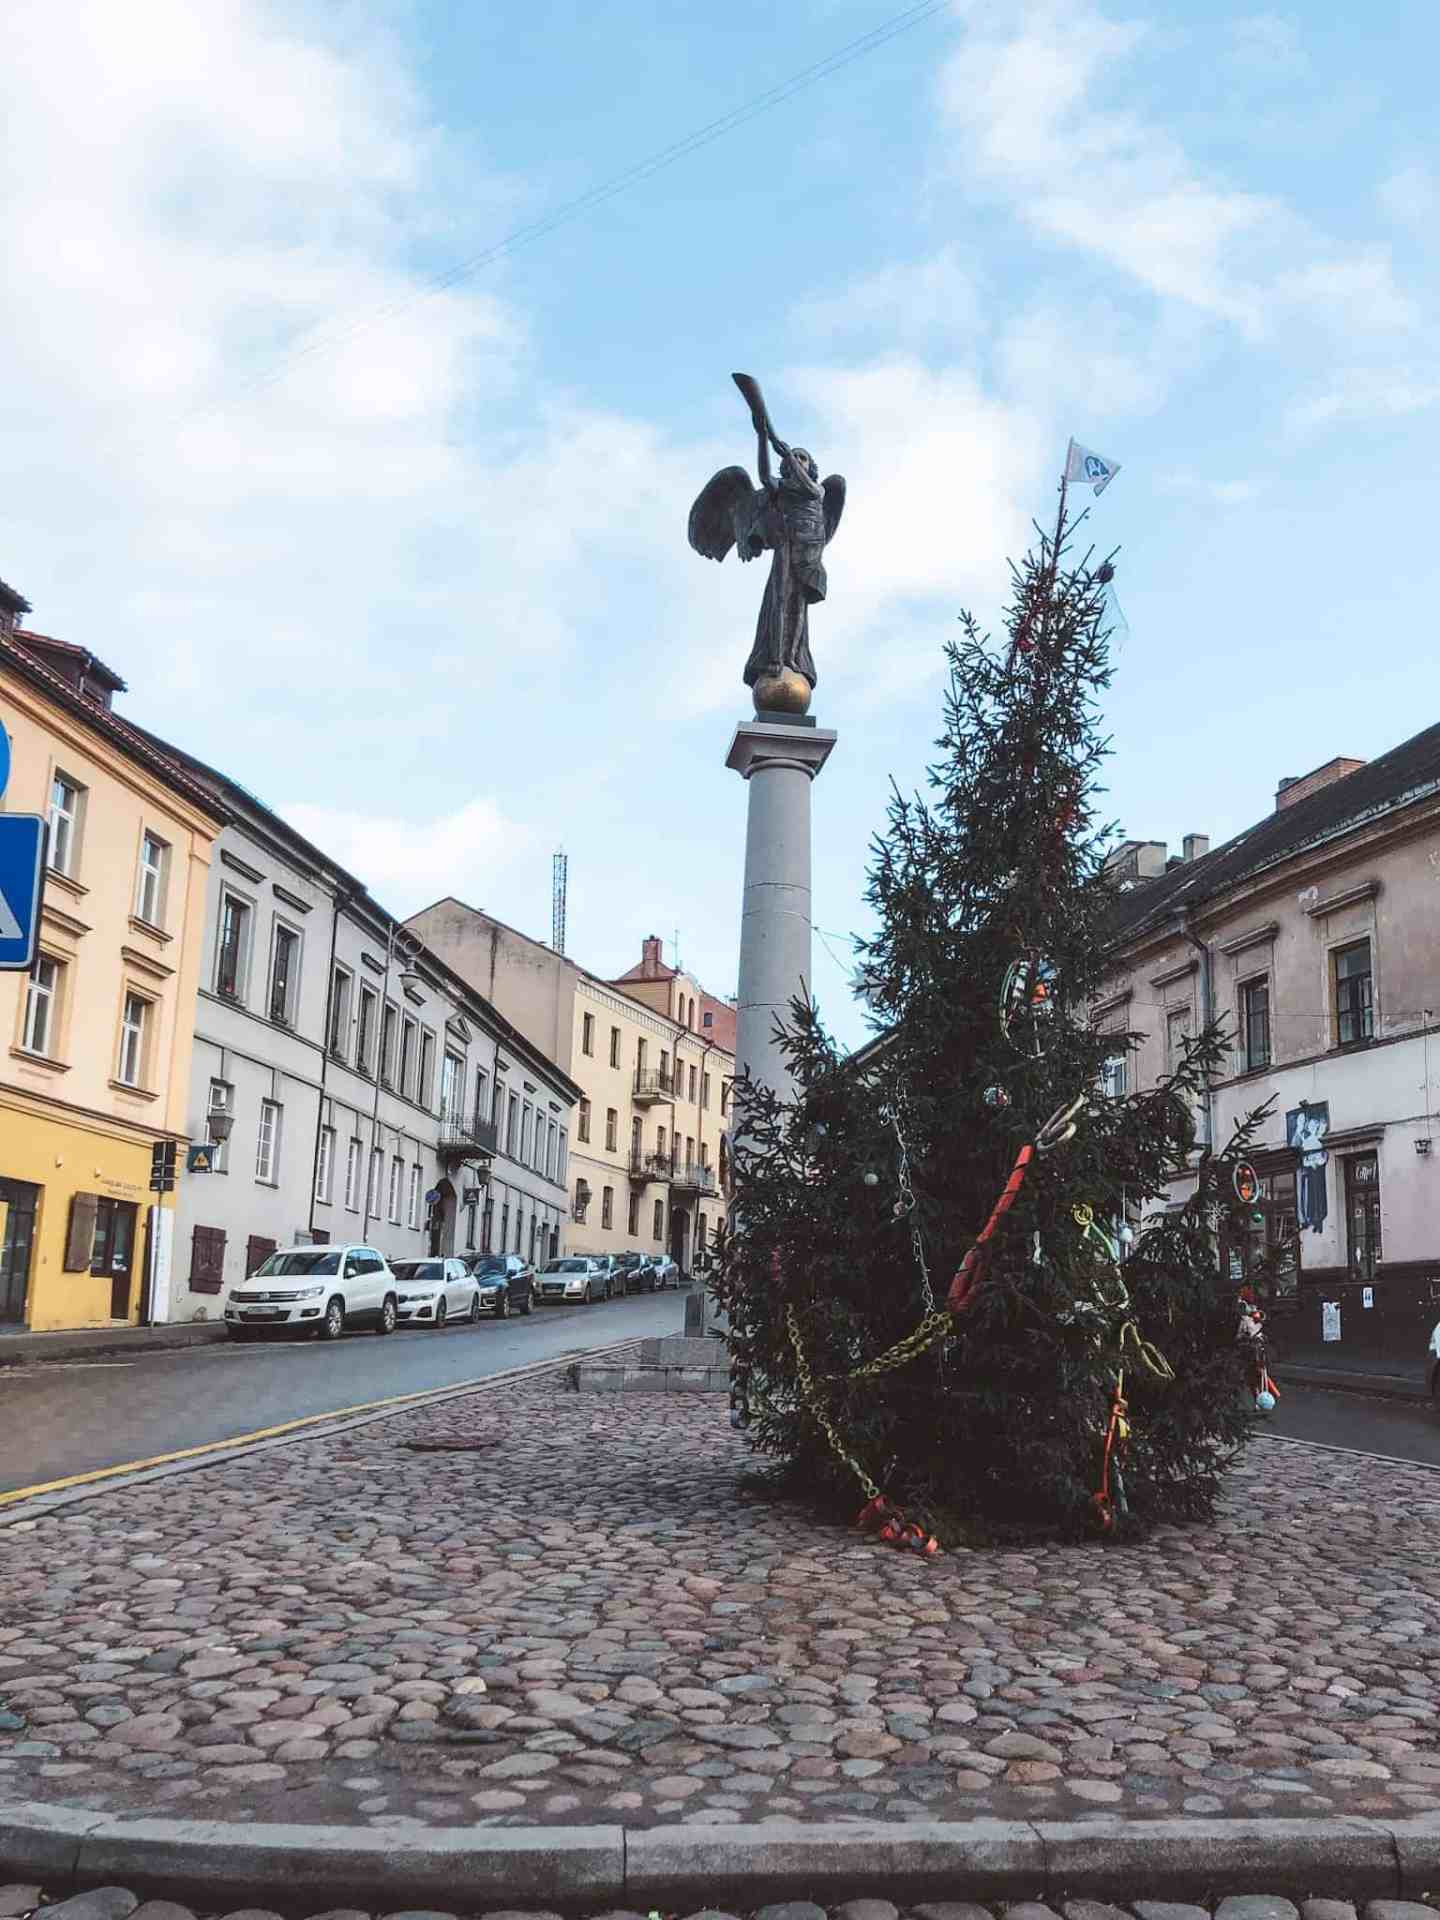 A Christmas tree in front of a pole with an angel on top in a city street